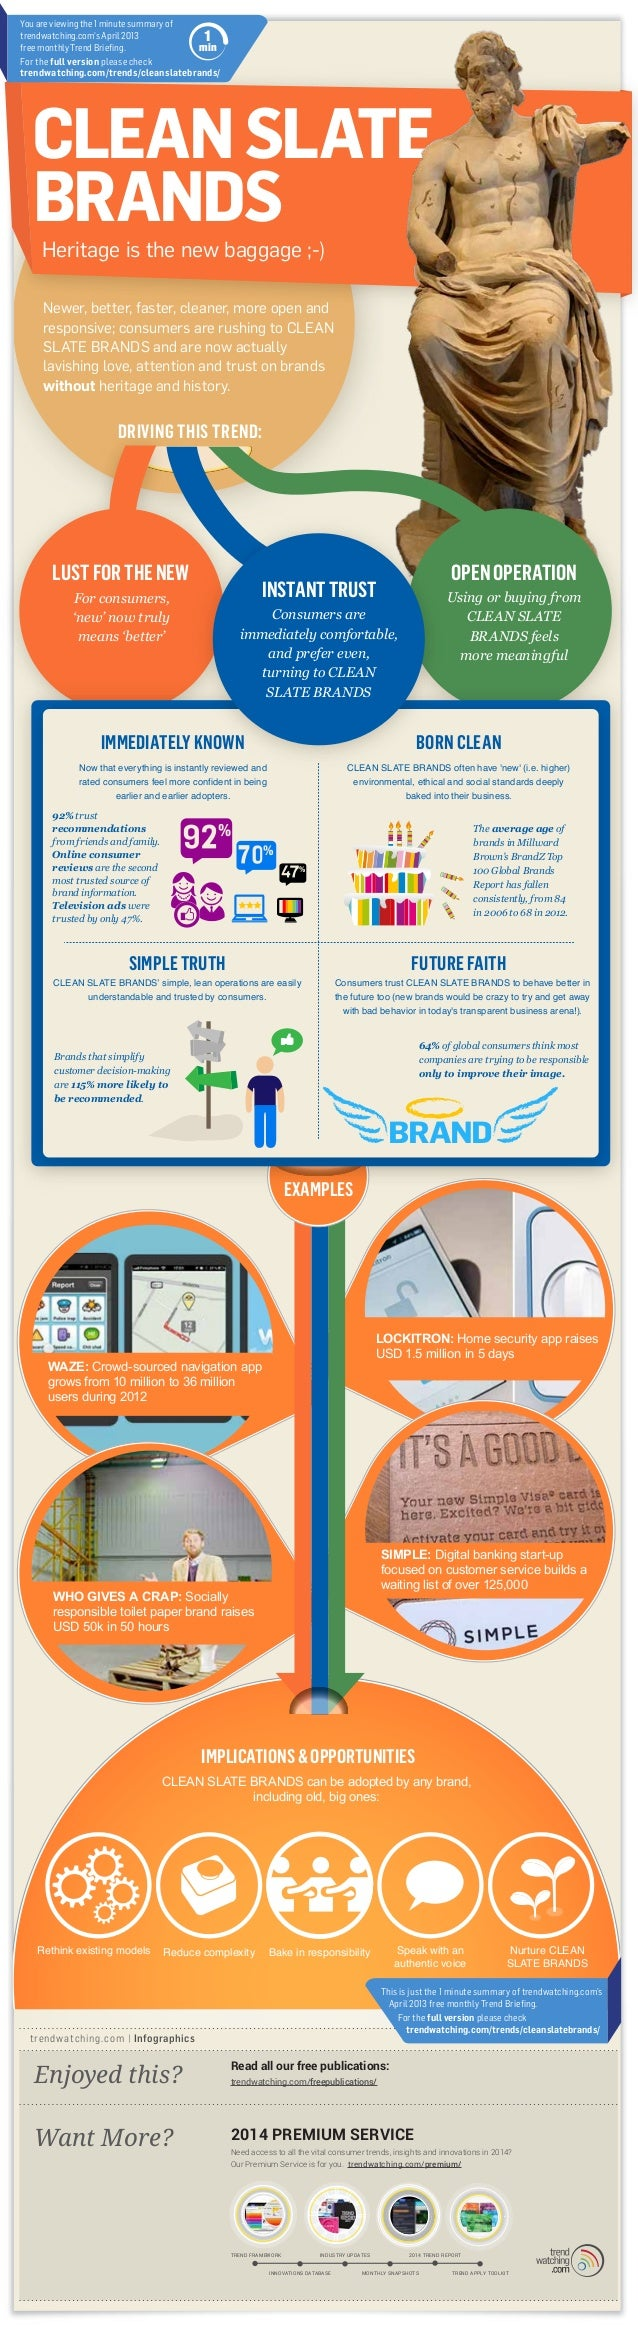 You are viewing the 1 minute summary of trendwatching.com's April 2013 min free monthly Trend Briefing. For the full versio...